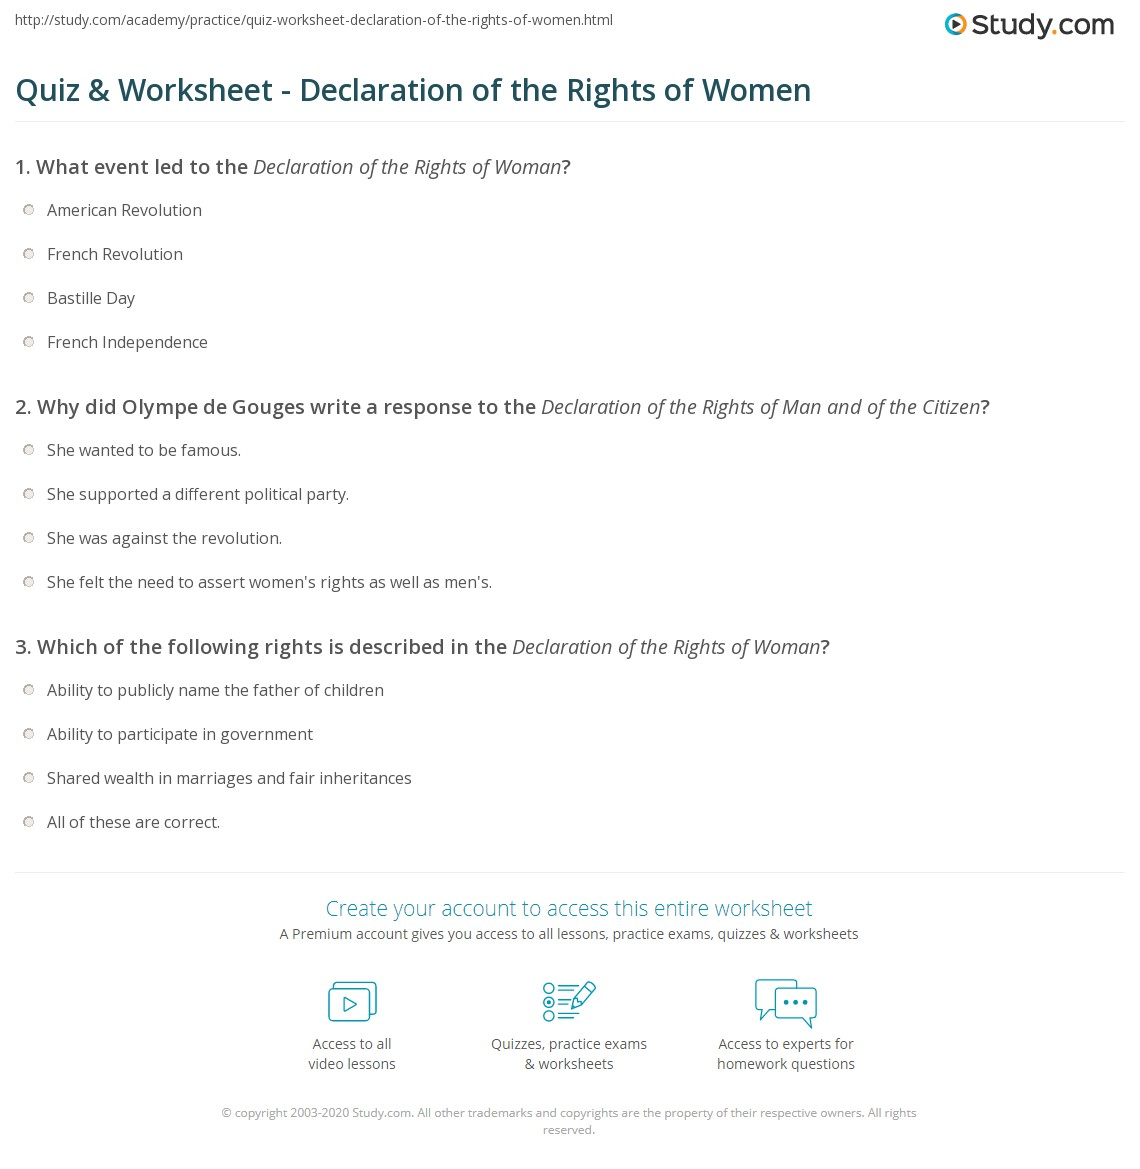 quiz worksheet declaration of the rights of women. Black Bedroom Furniture Sets. Home Design Ideas